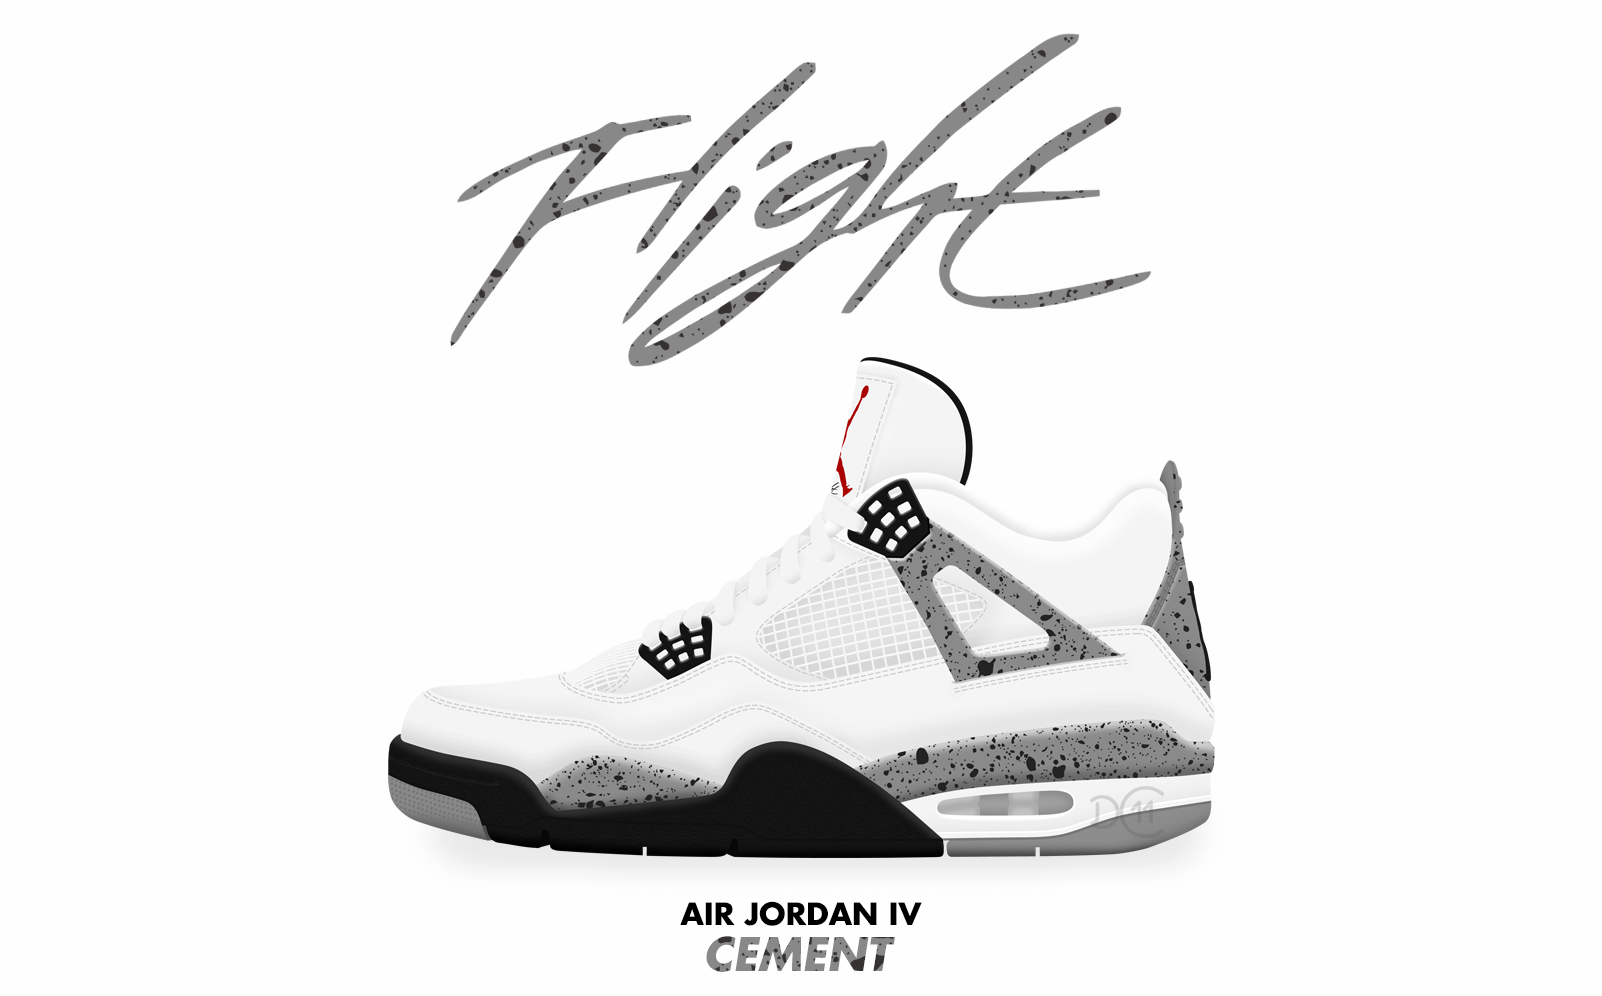 newest 0f238 bb7b2 low price nike mens air jordan 4 retro cement white fire red black leather  size 8 8c600 d8929  promo code for air jordan iv cement by dcrossover11  34c94 ...